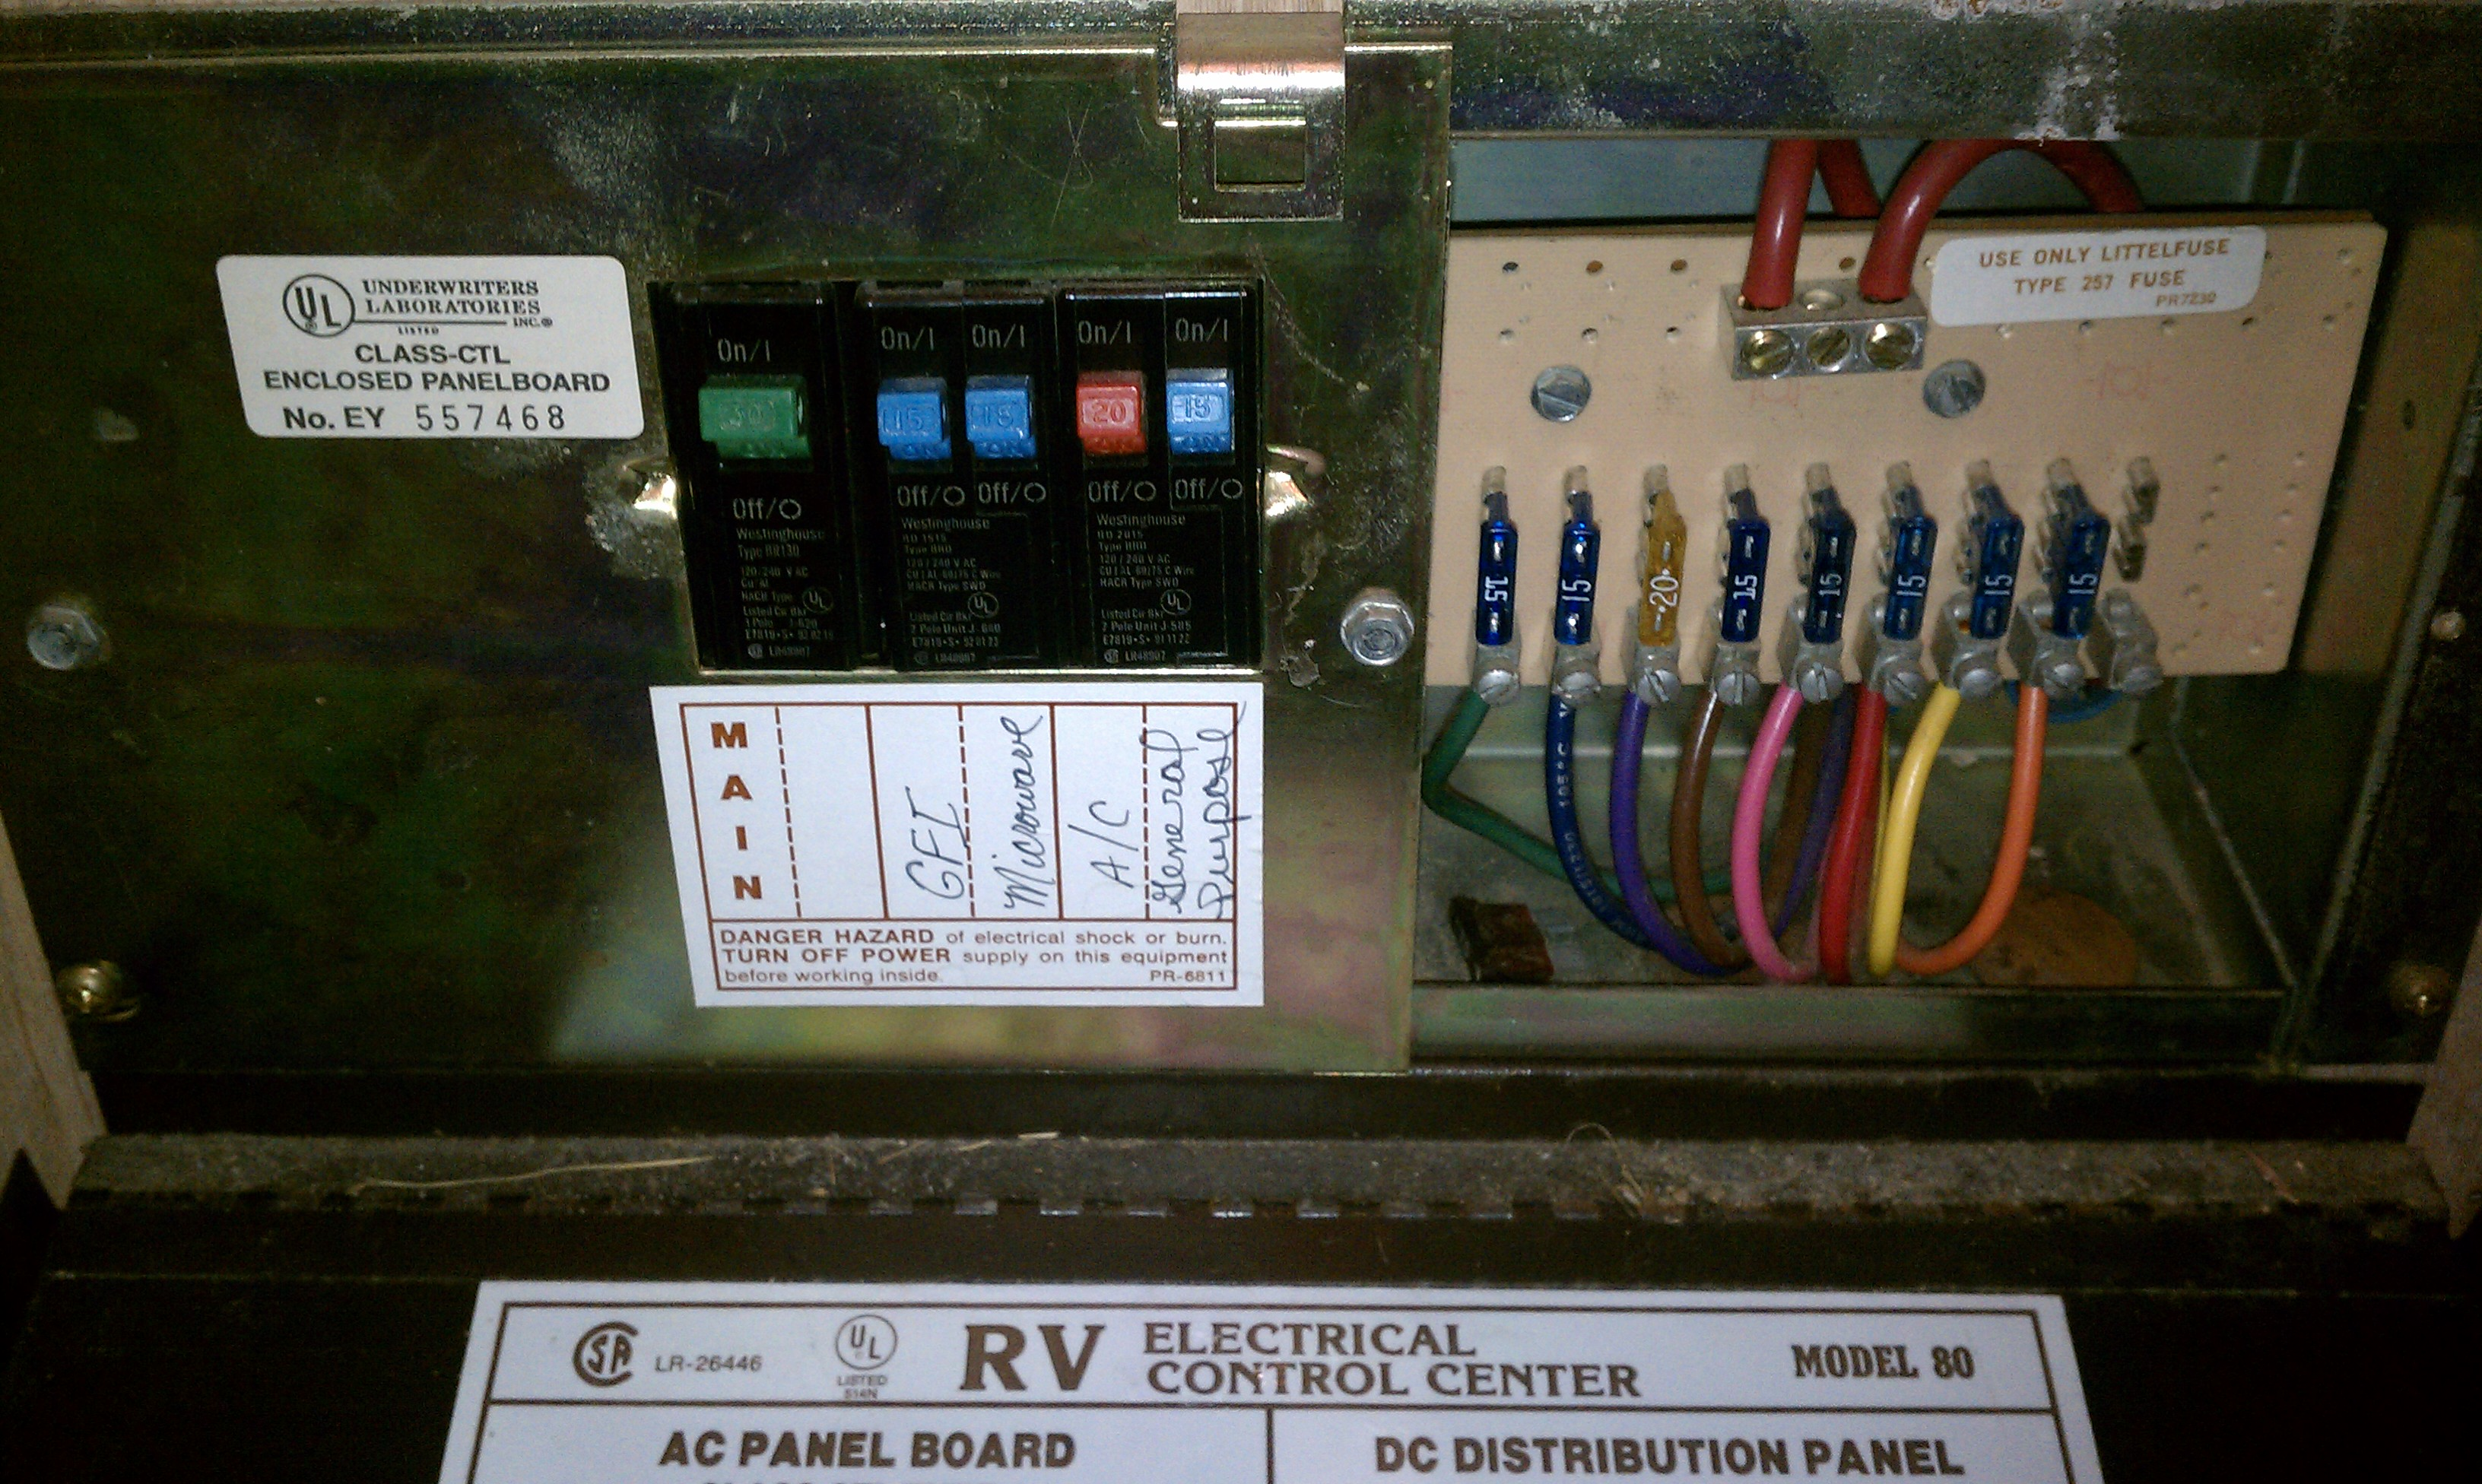 29 simple camper trailer fuse box ruparfum com Fleetwood Bounder RV Wiring Diagrams Forest River Trailer Wiring Schematics 1988 Ford F-150 4x4 Fuel Pump Wiring on coachmen rv wiring diagrams fuse box